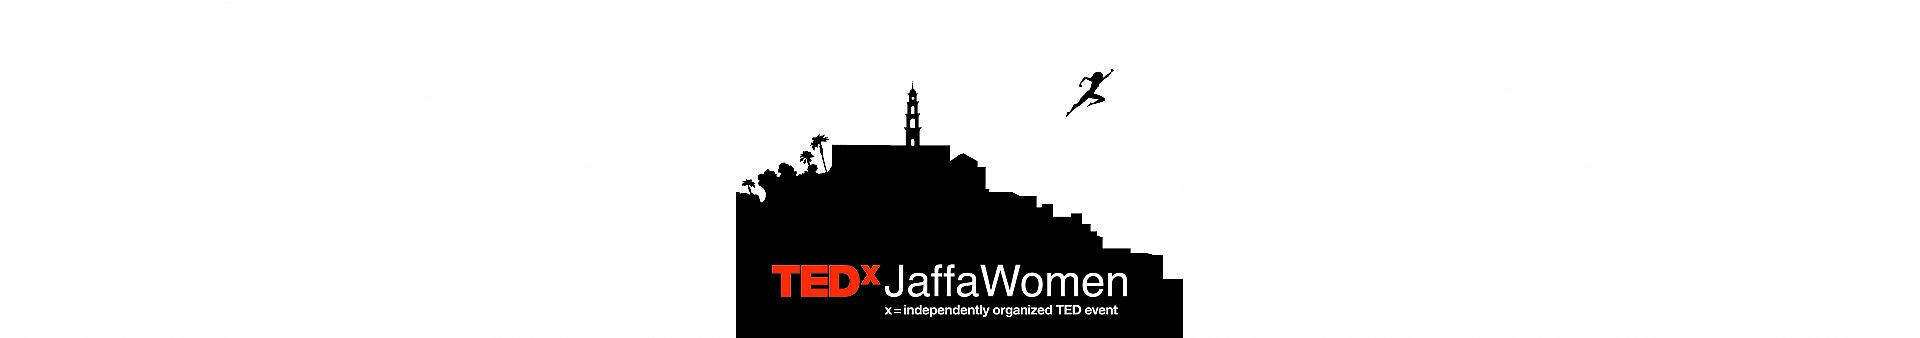 TED x Jaffa Women